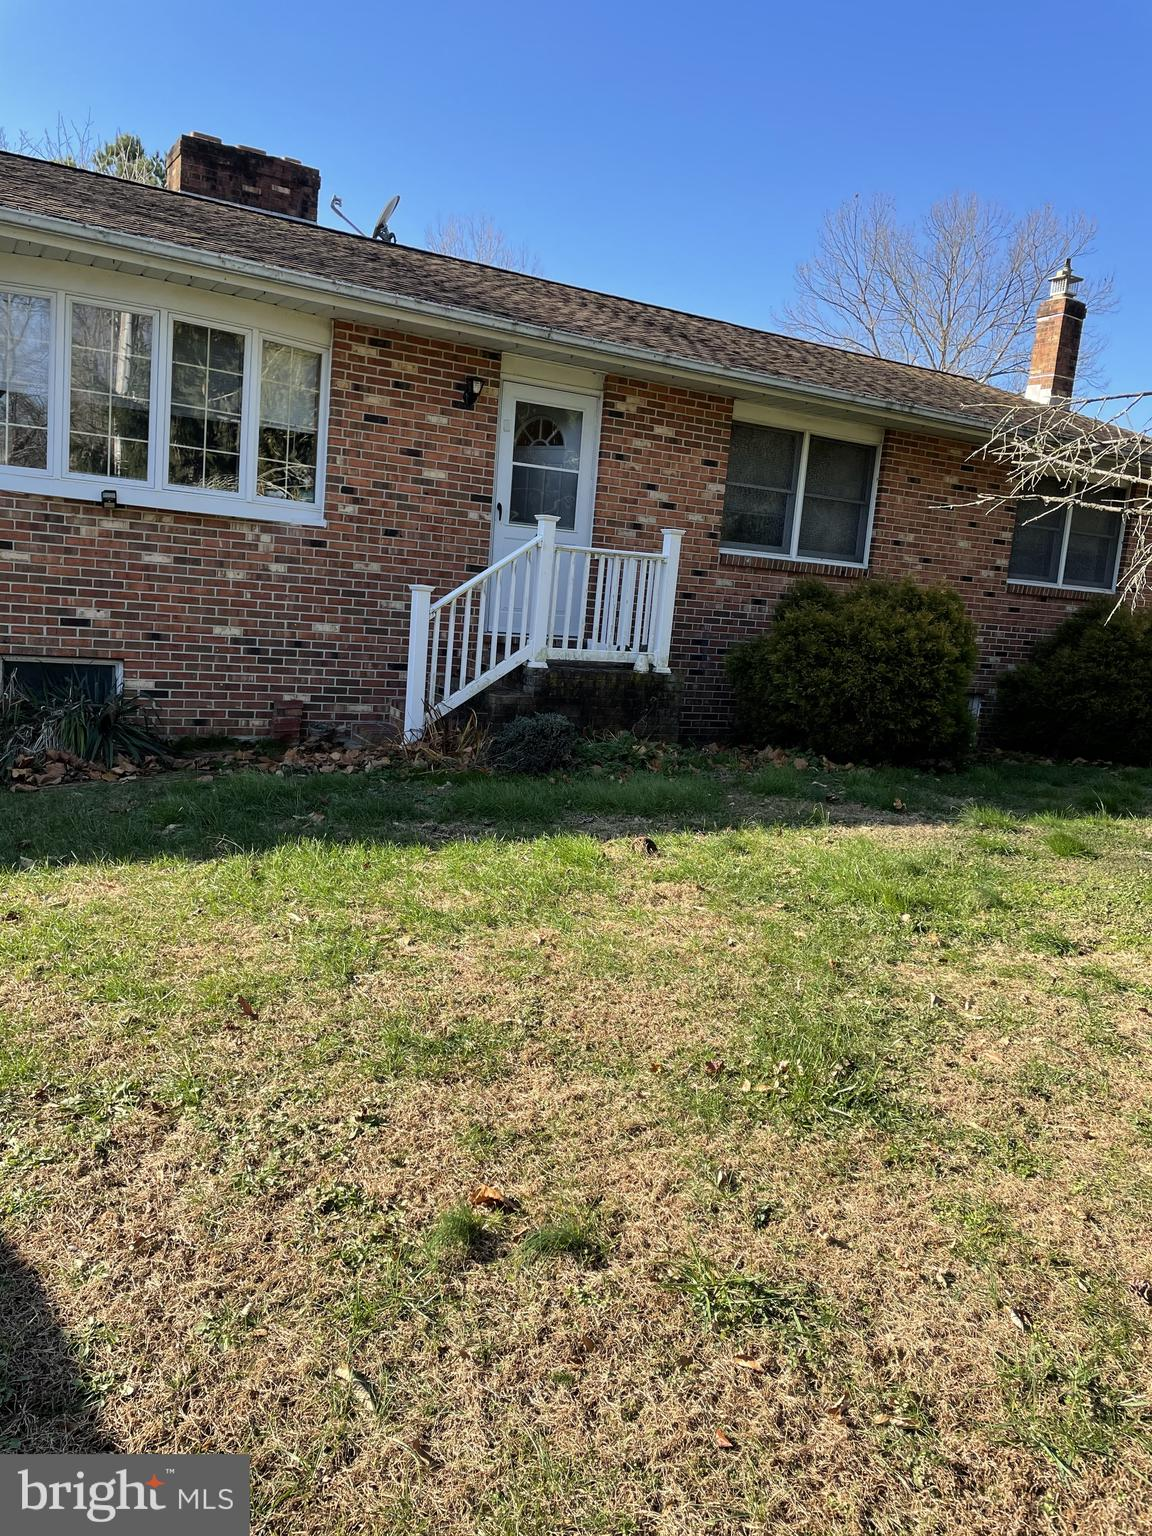 Visit this home virtually: http://www.vht.com/434126260/IDXS - Beautiful country location with brick rancher just awaiting your personal additions.  Two car garage attached to the property was used for a kennel, but it could be returned to garage space or additional living space only limited by your needs. Outside of the kennel is a concrete patio, and a back porch.  Watch the wildlife while enjoying your morning coffee.    The basement is very large and could also be converted to additional living space, workshop, studio, etc.  Many recent upgrades including a french drain, heat/air, and well systems.